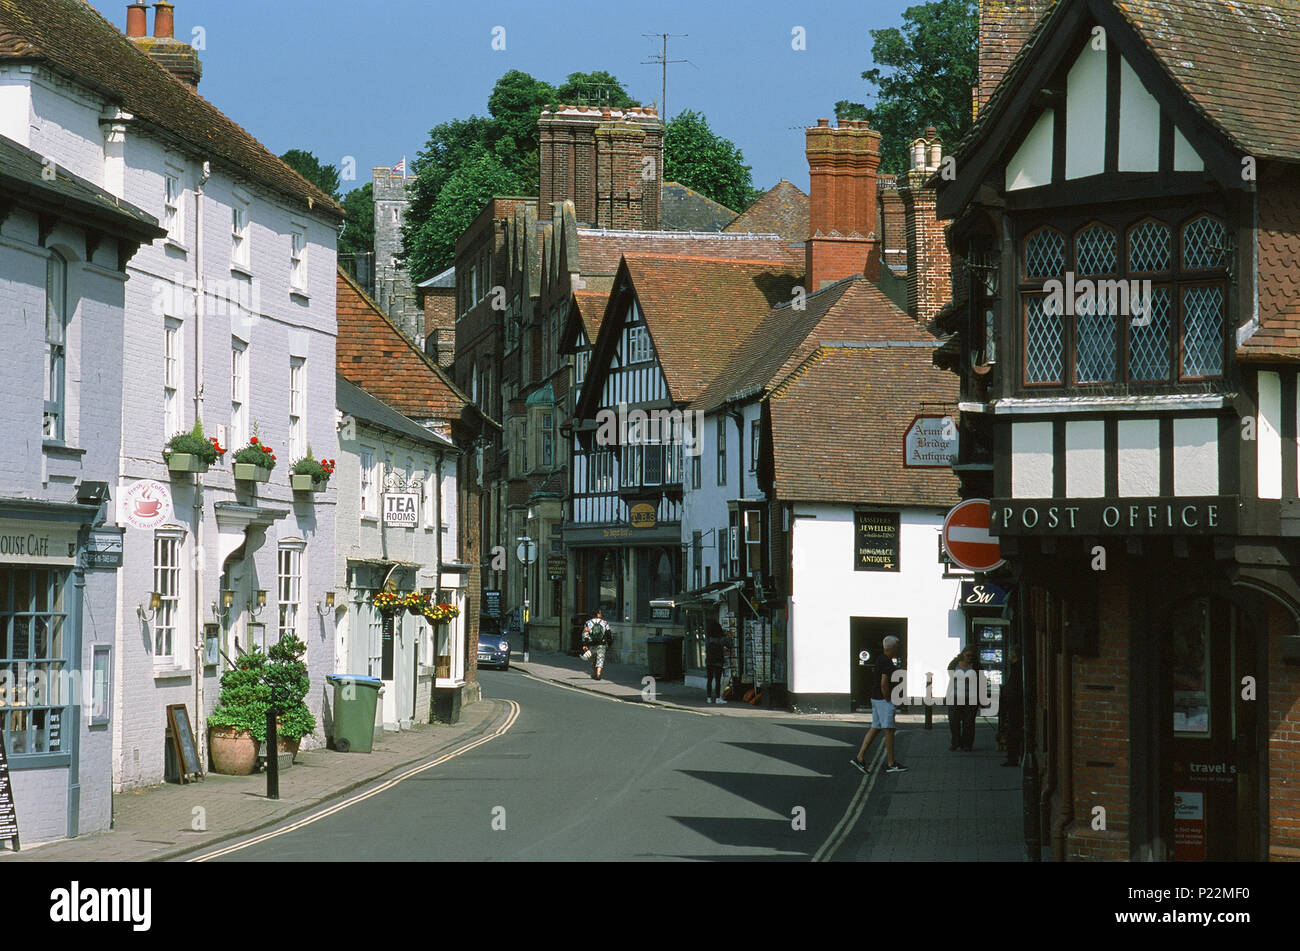 Arundel High Street, West Sussex, Southern England - Stock Image